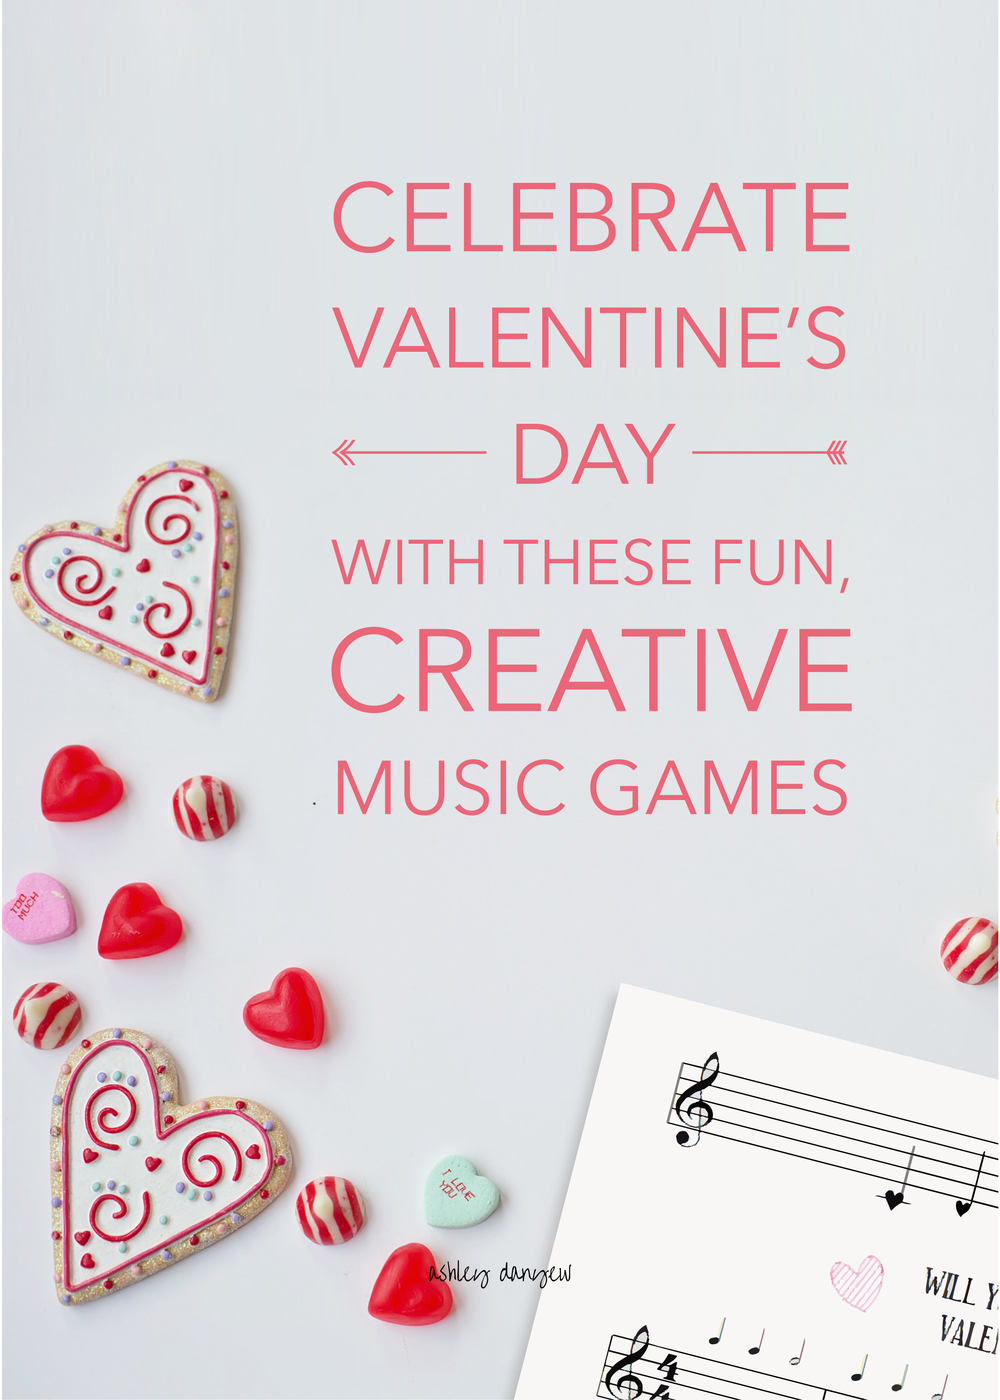 Celebrate Valentine's Day with These Fun, Creative Music Games